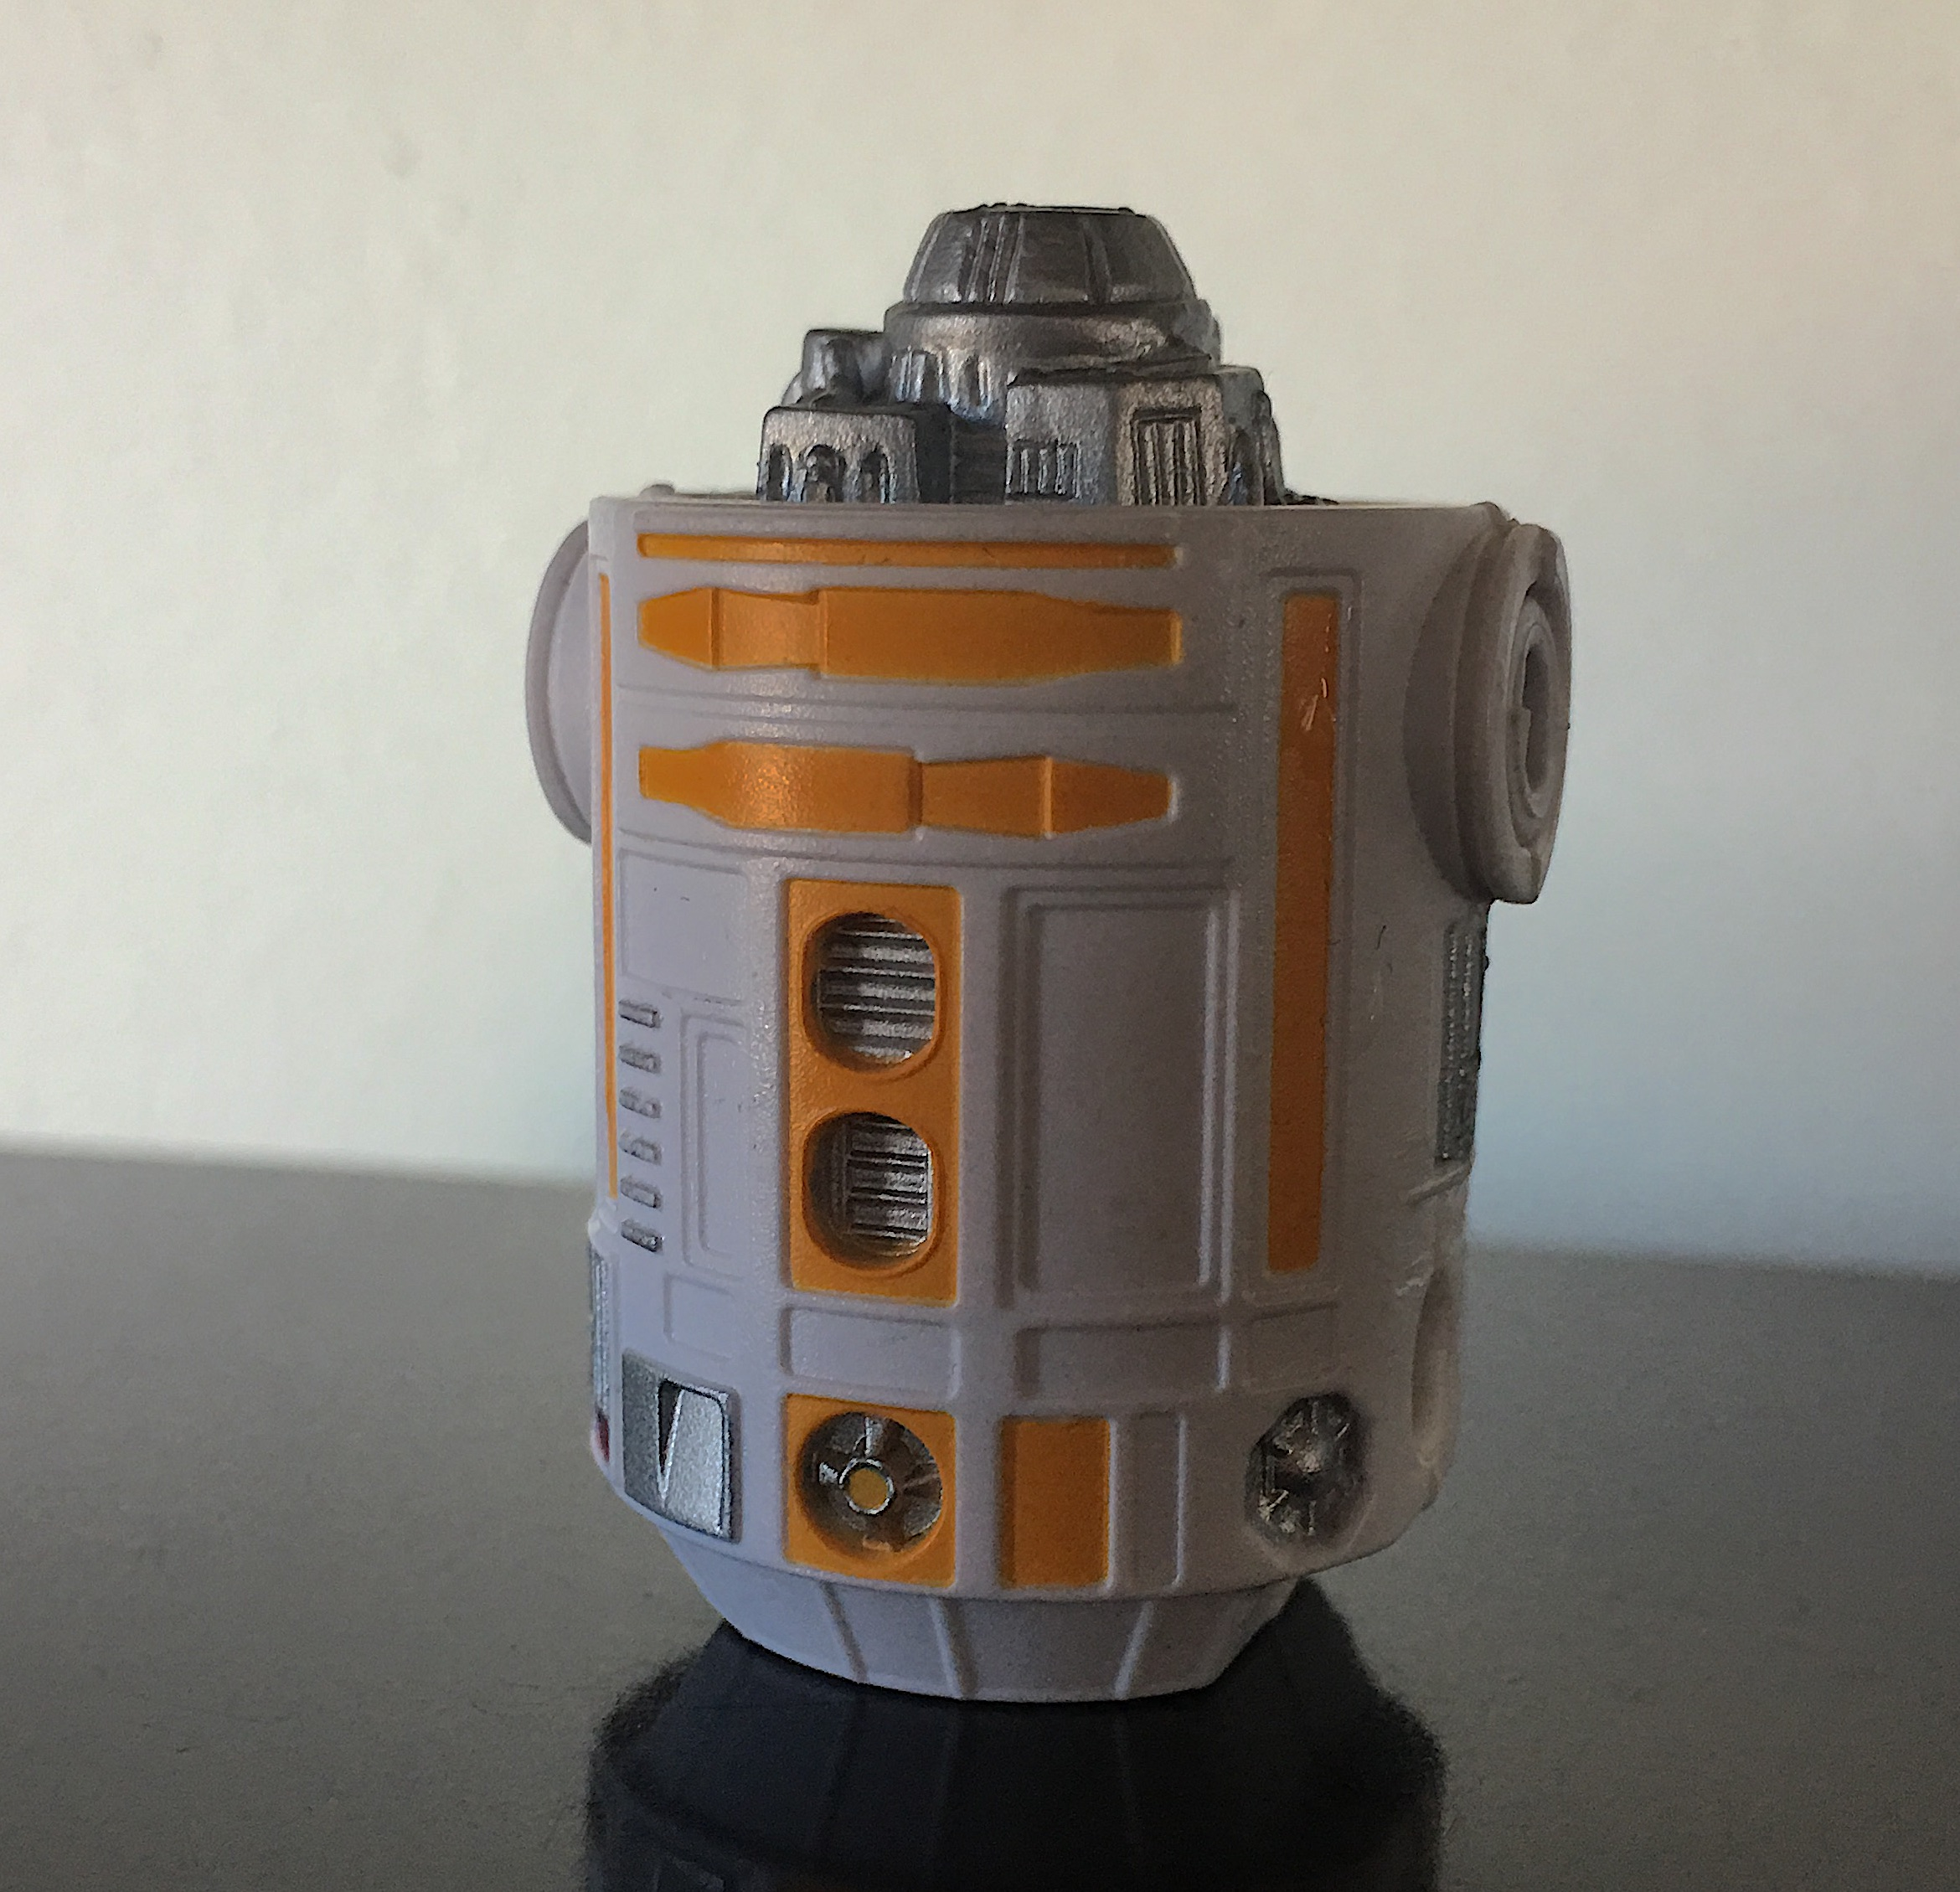 Disney Droid Factory Body